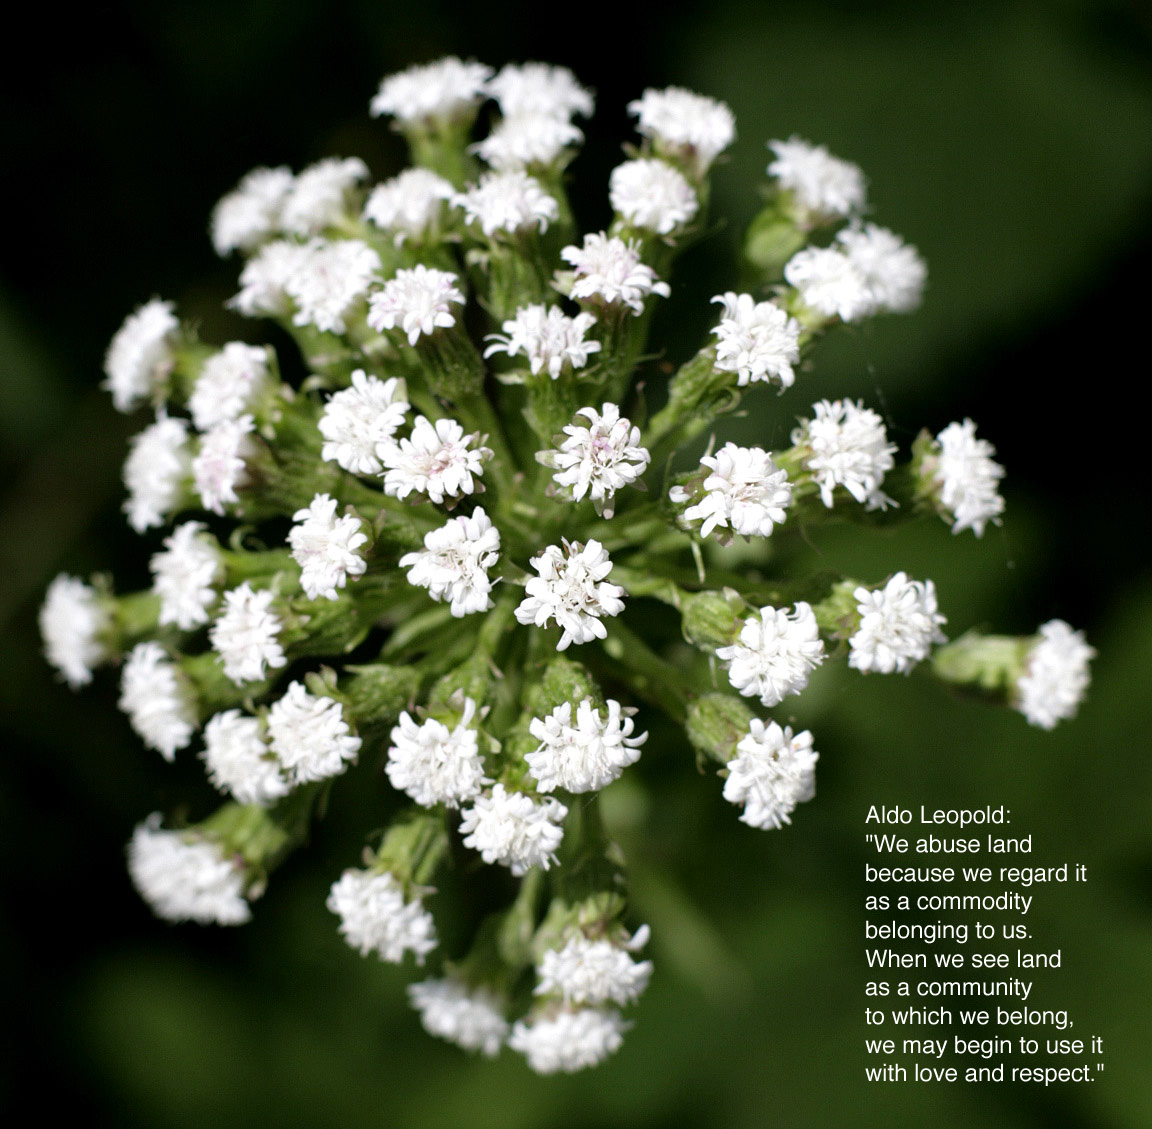 Bursting White Flower by ˇBerd with Quote by Aldo Leopold, We abuse land because we regard it as a commodity belonging to us. When we see land as a community to which we belong, we may begin to use it with love and respect. - Aldo Leopold